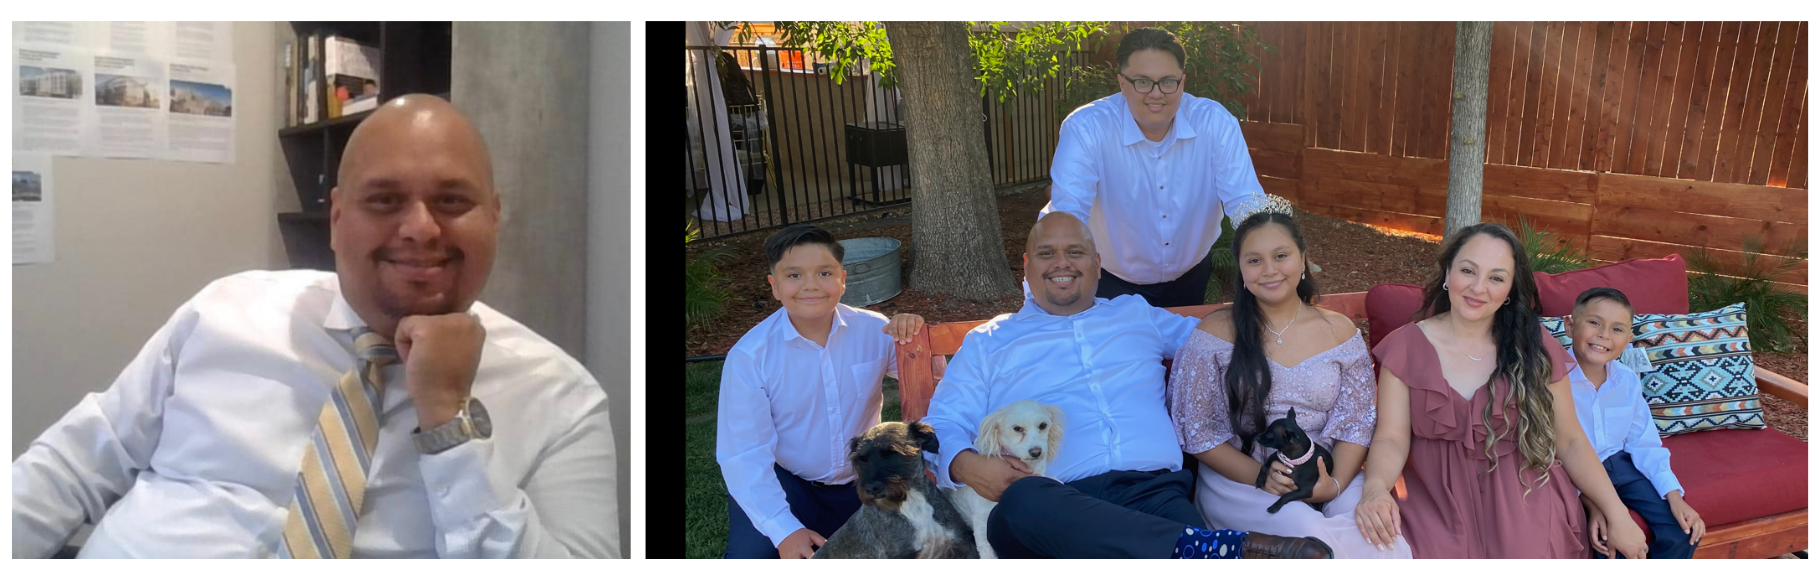 Snyder Diamond new builder division director Jojo Guevara portrait and with his family